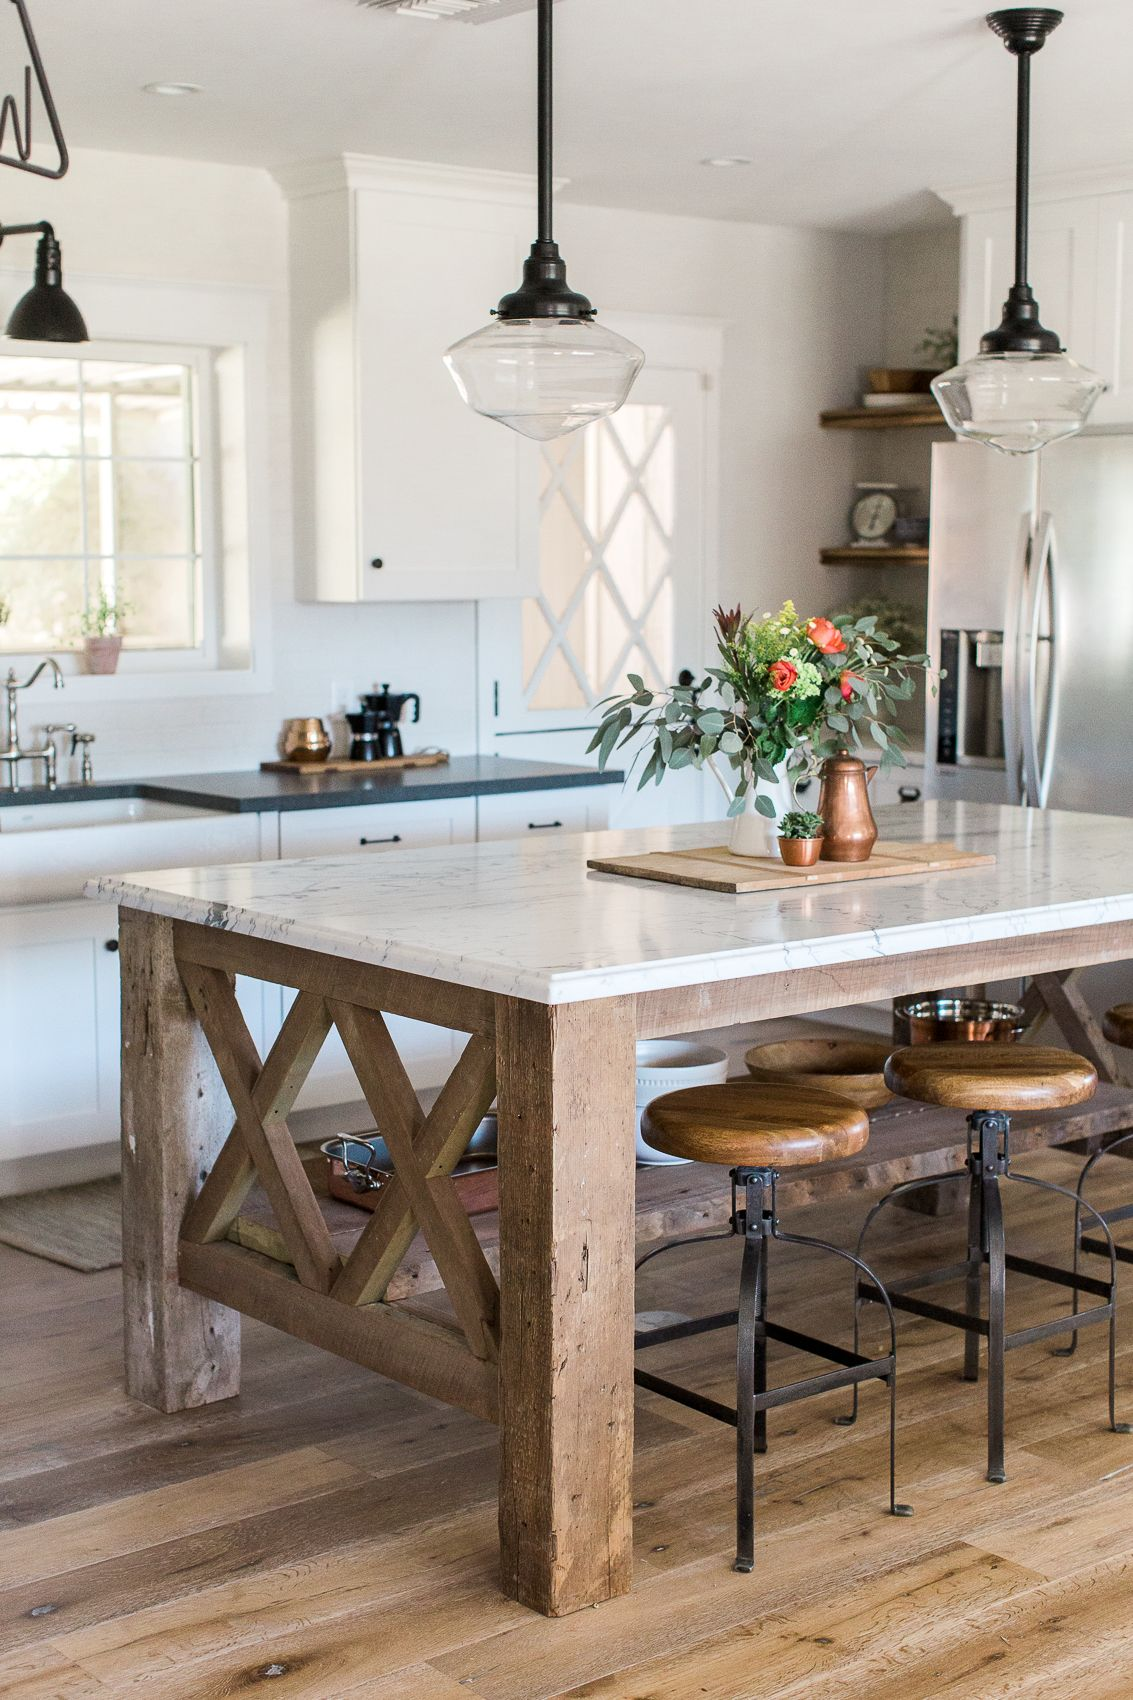 custom kitchen islands small kitchens ideas island built from barnwood with marble countertop